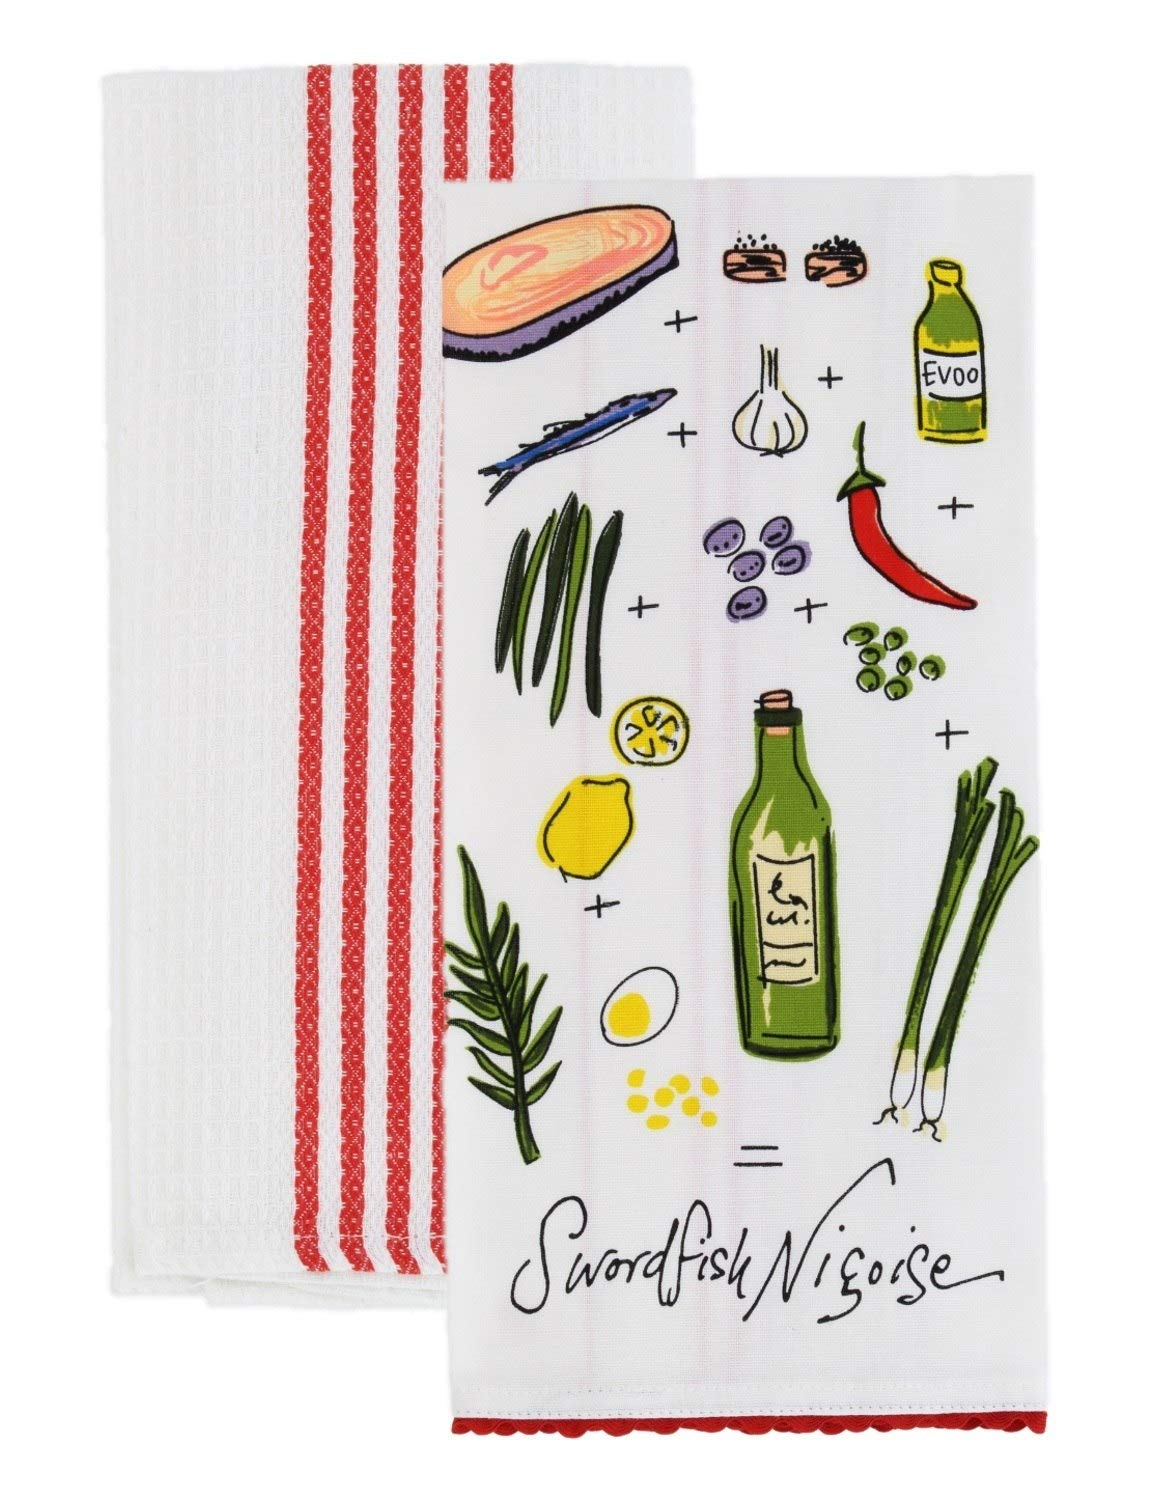 Rachael Ray Kitchen Dish Towel/Cloth (2 pk) - Use on Hands, Dry or Wet Messes/Spills - 100% Cotton - Includes 1 Flour Sack Towel Decorated with Genuine Swordfish Recipe - Red & 1 Waffle Weave Towel